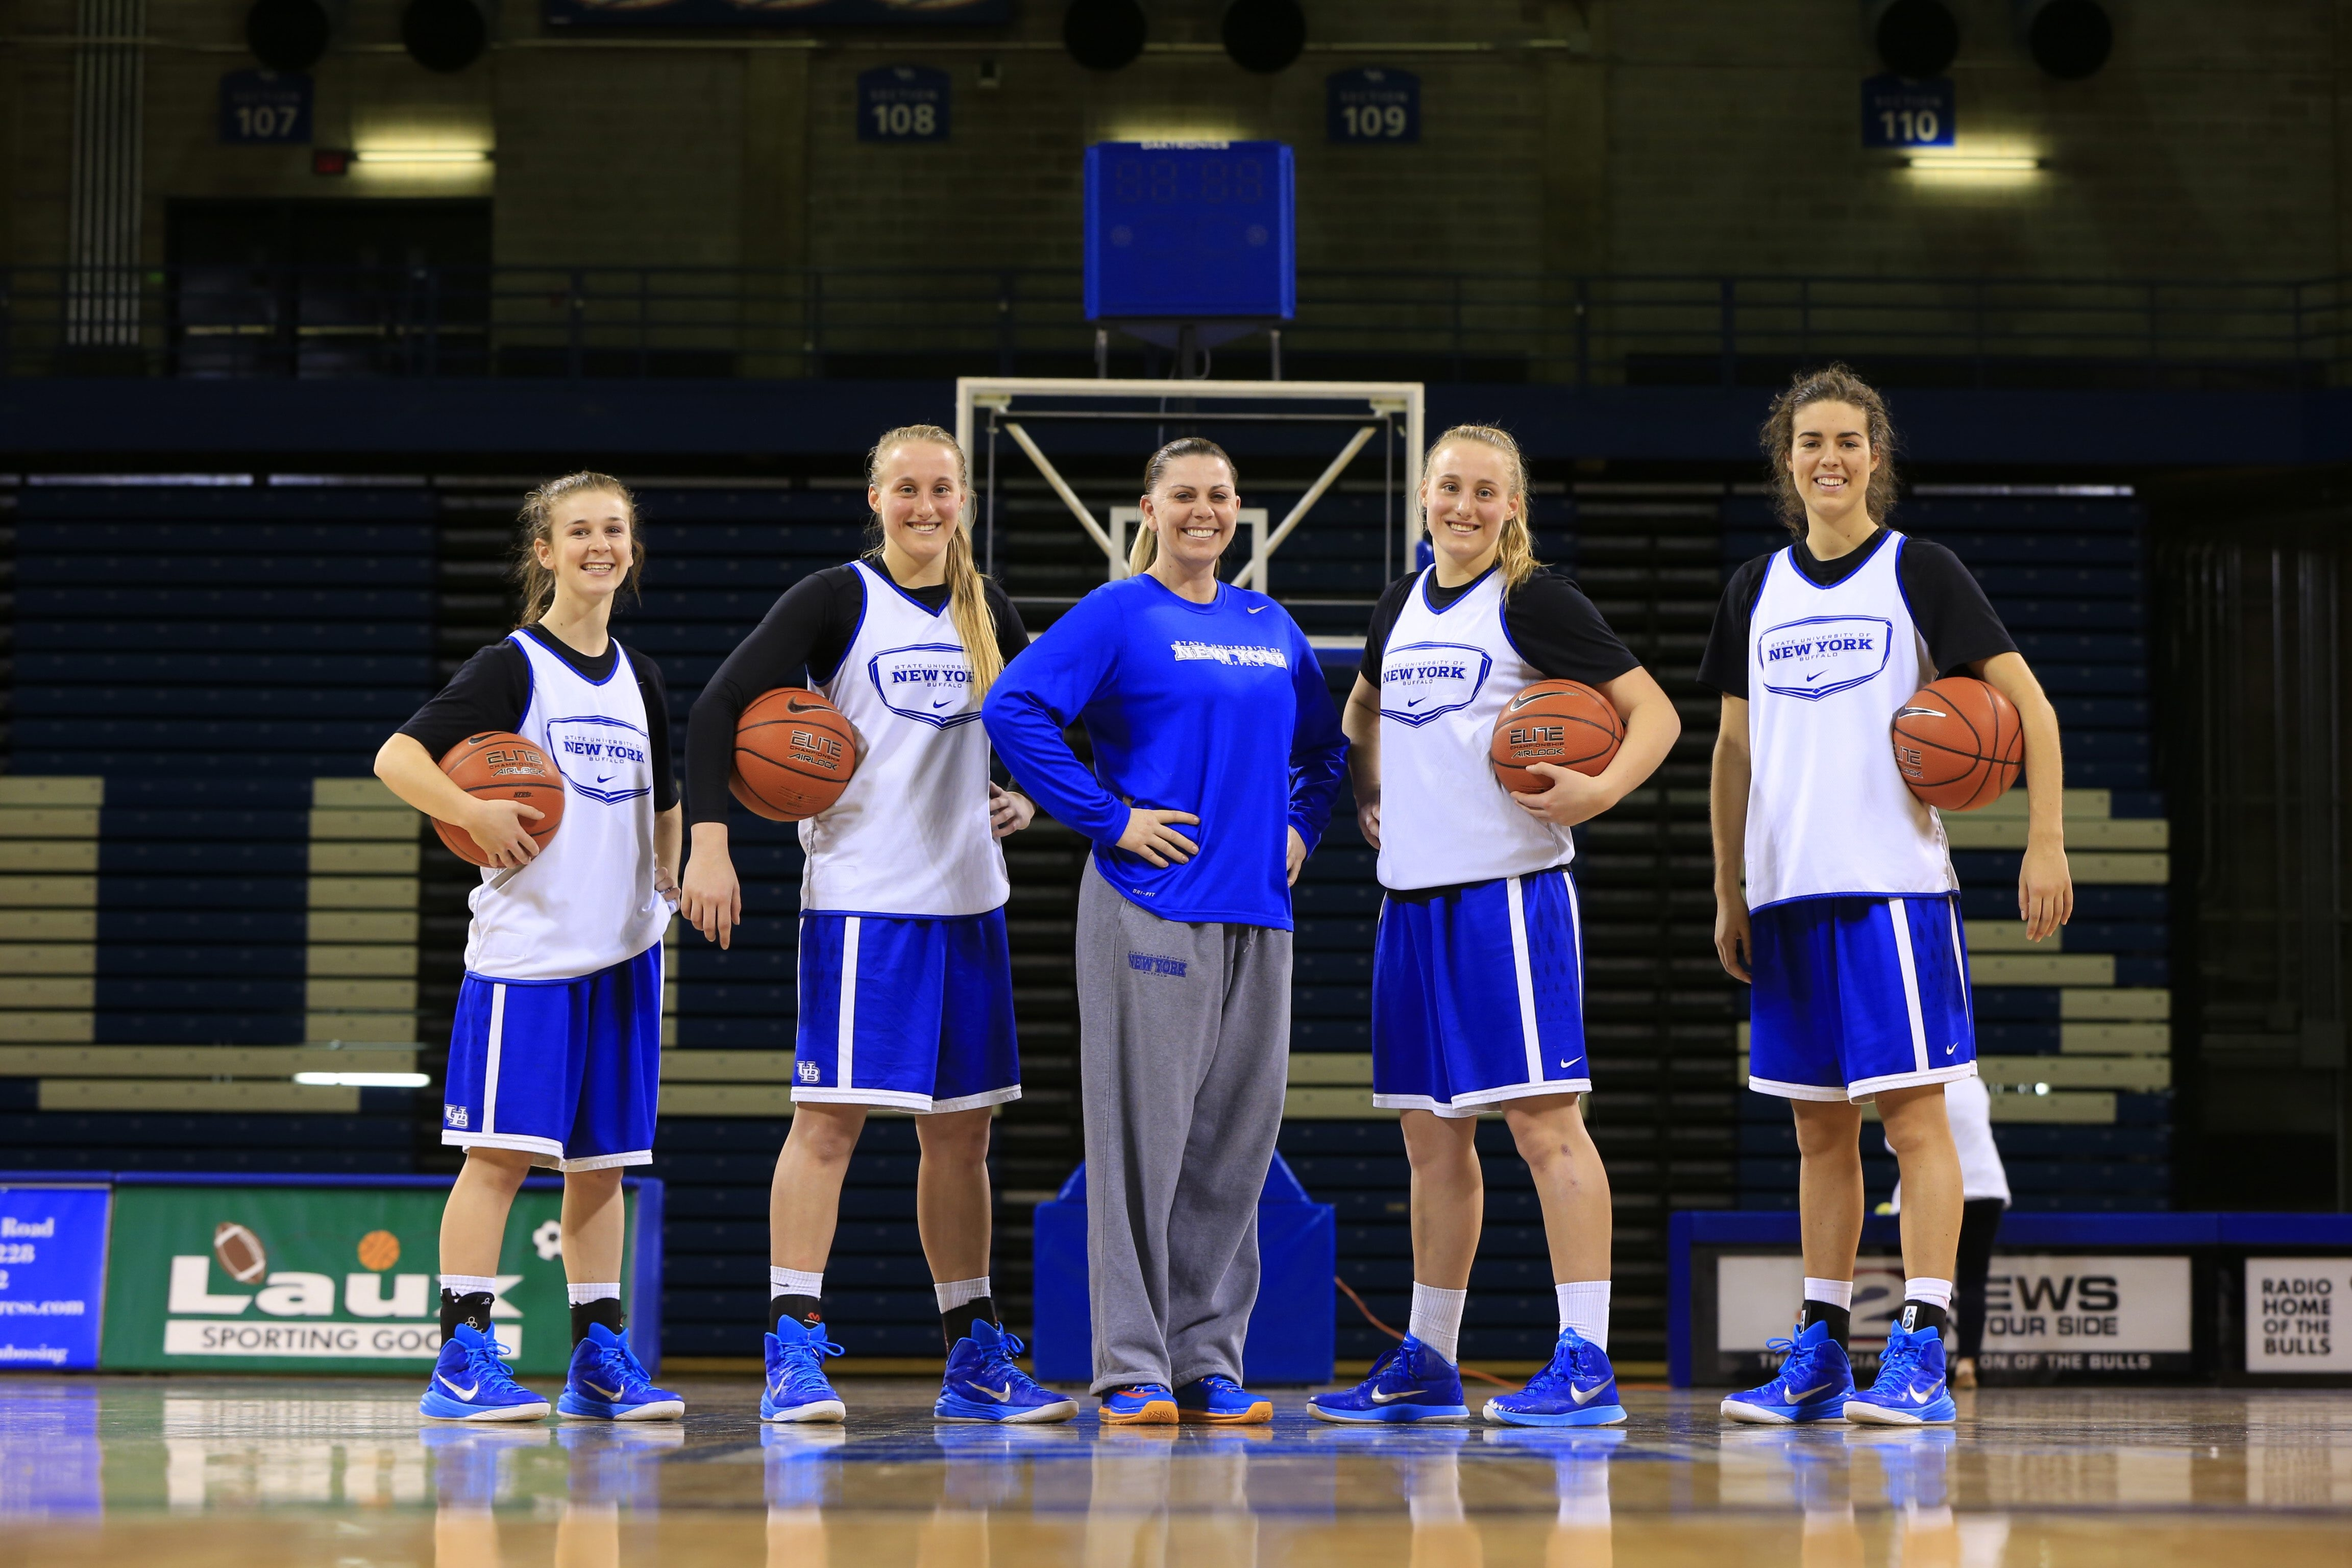 The University at Buffalo's Australian contingent is, from left, guard Stephanie Reid, guard Liisa Ups, assistant coach Cherie Cordoba, guard Katherine Ups and forward Courtney Wilkins.